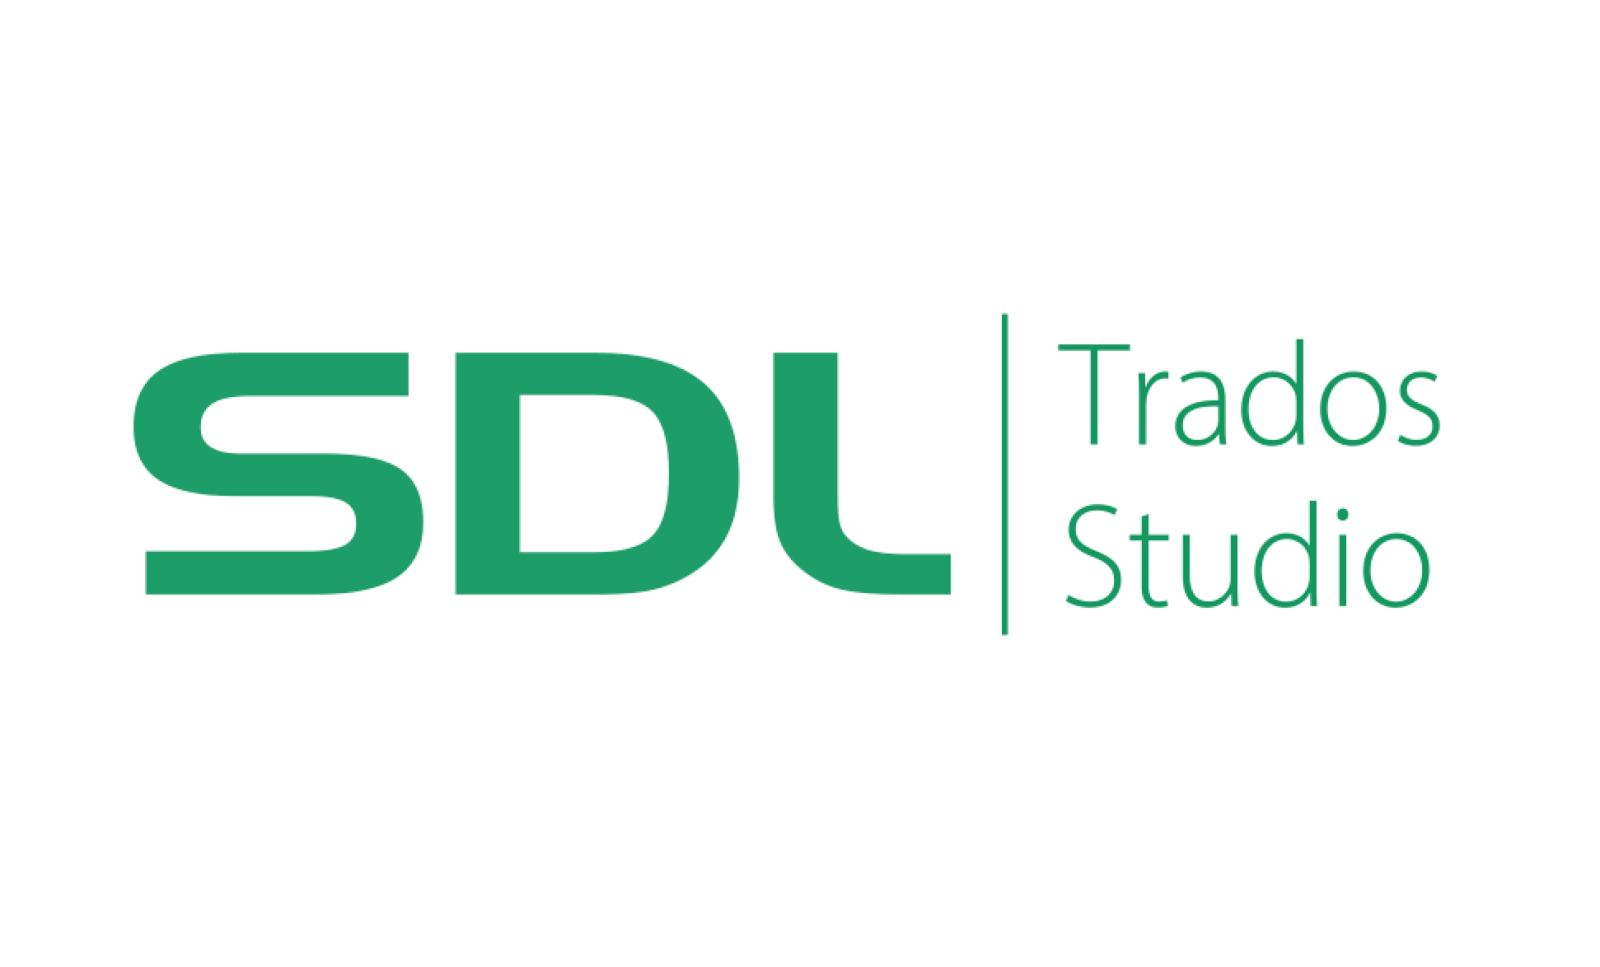 sdl trados studio 2014 download crack